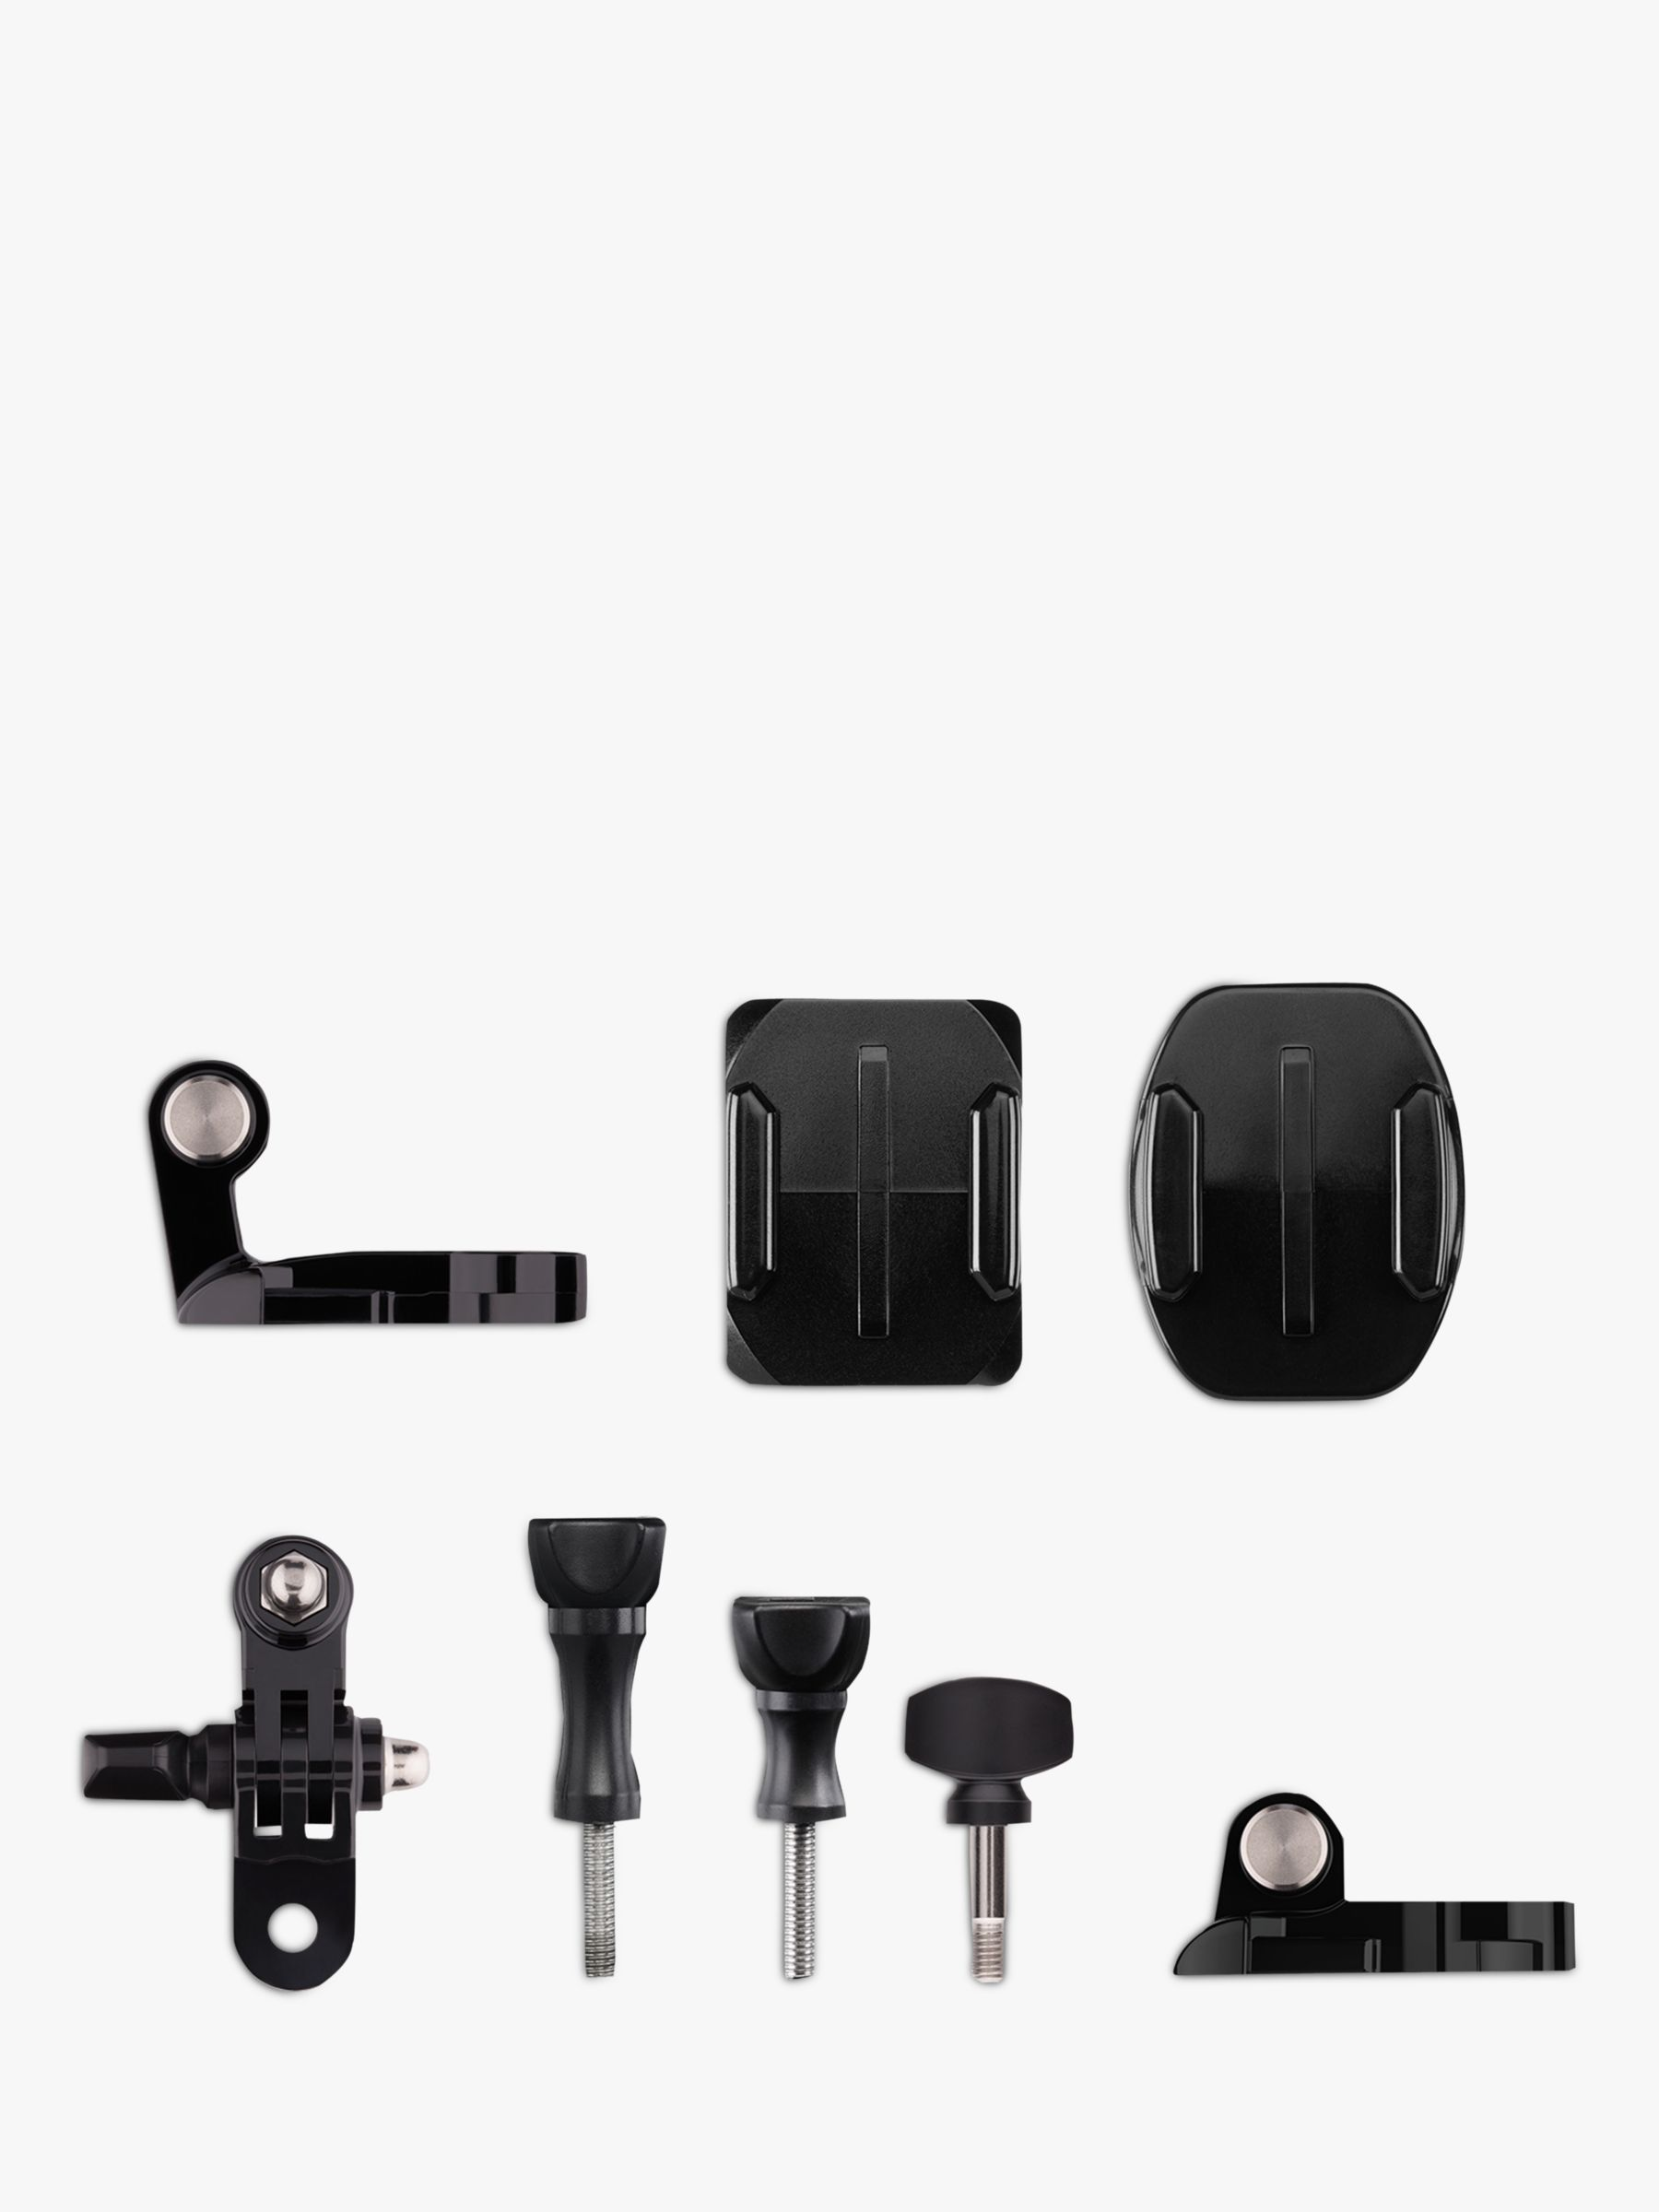 Gopro GoPro Accessories and Spare Parts Grab Bag for All GoPros